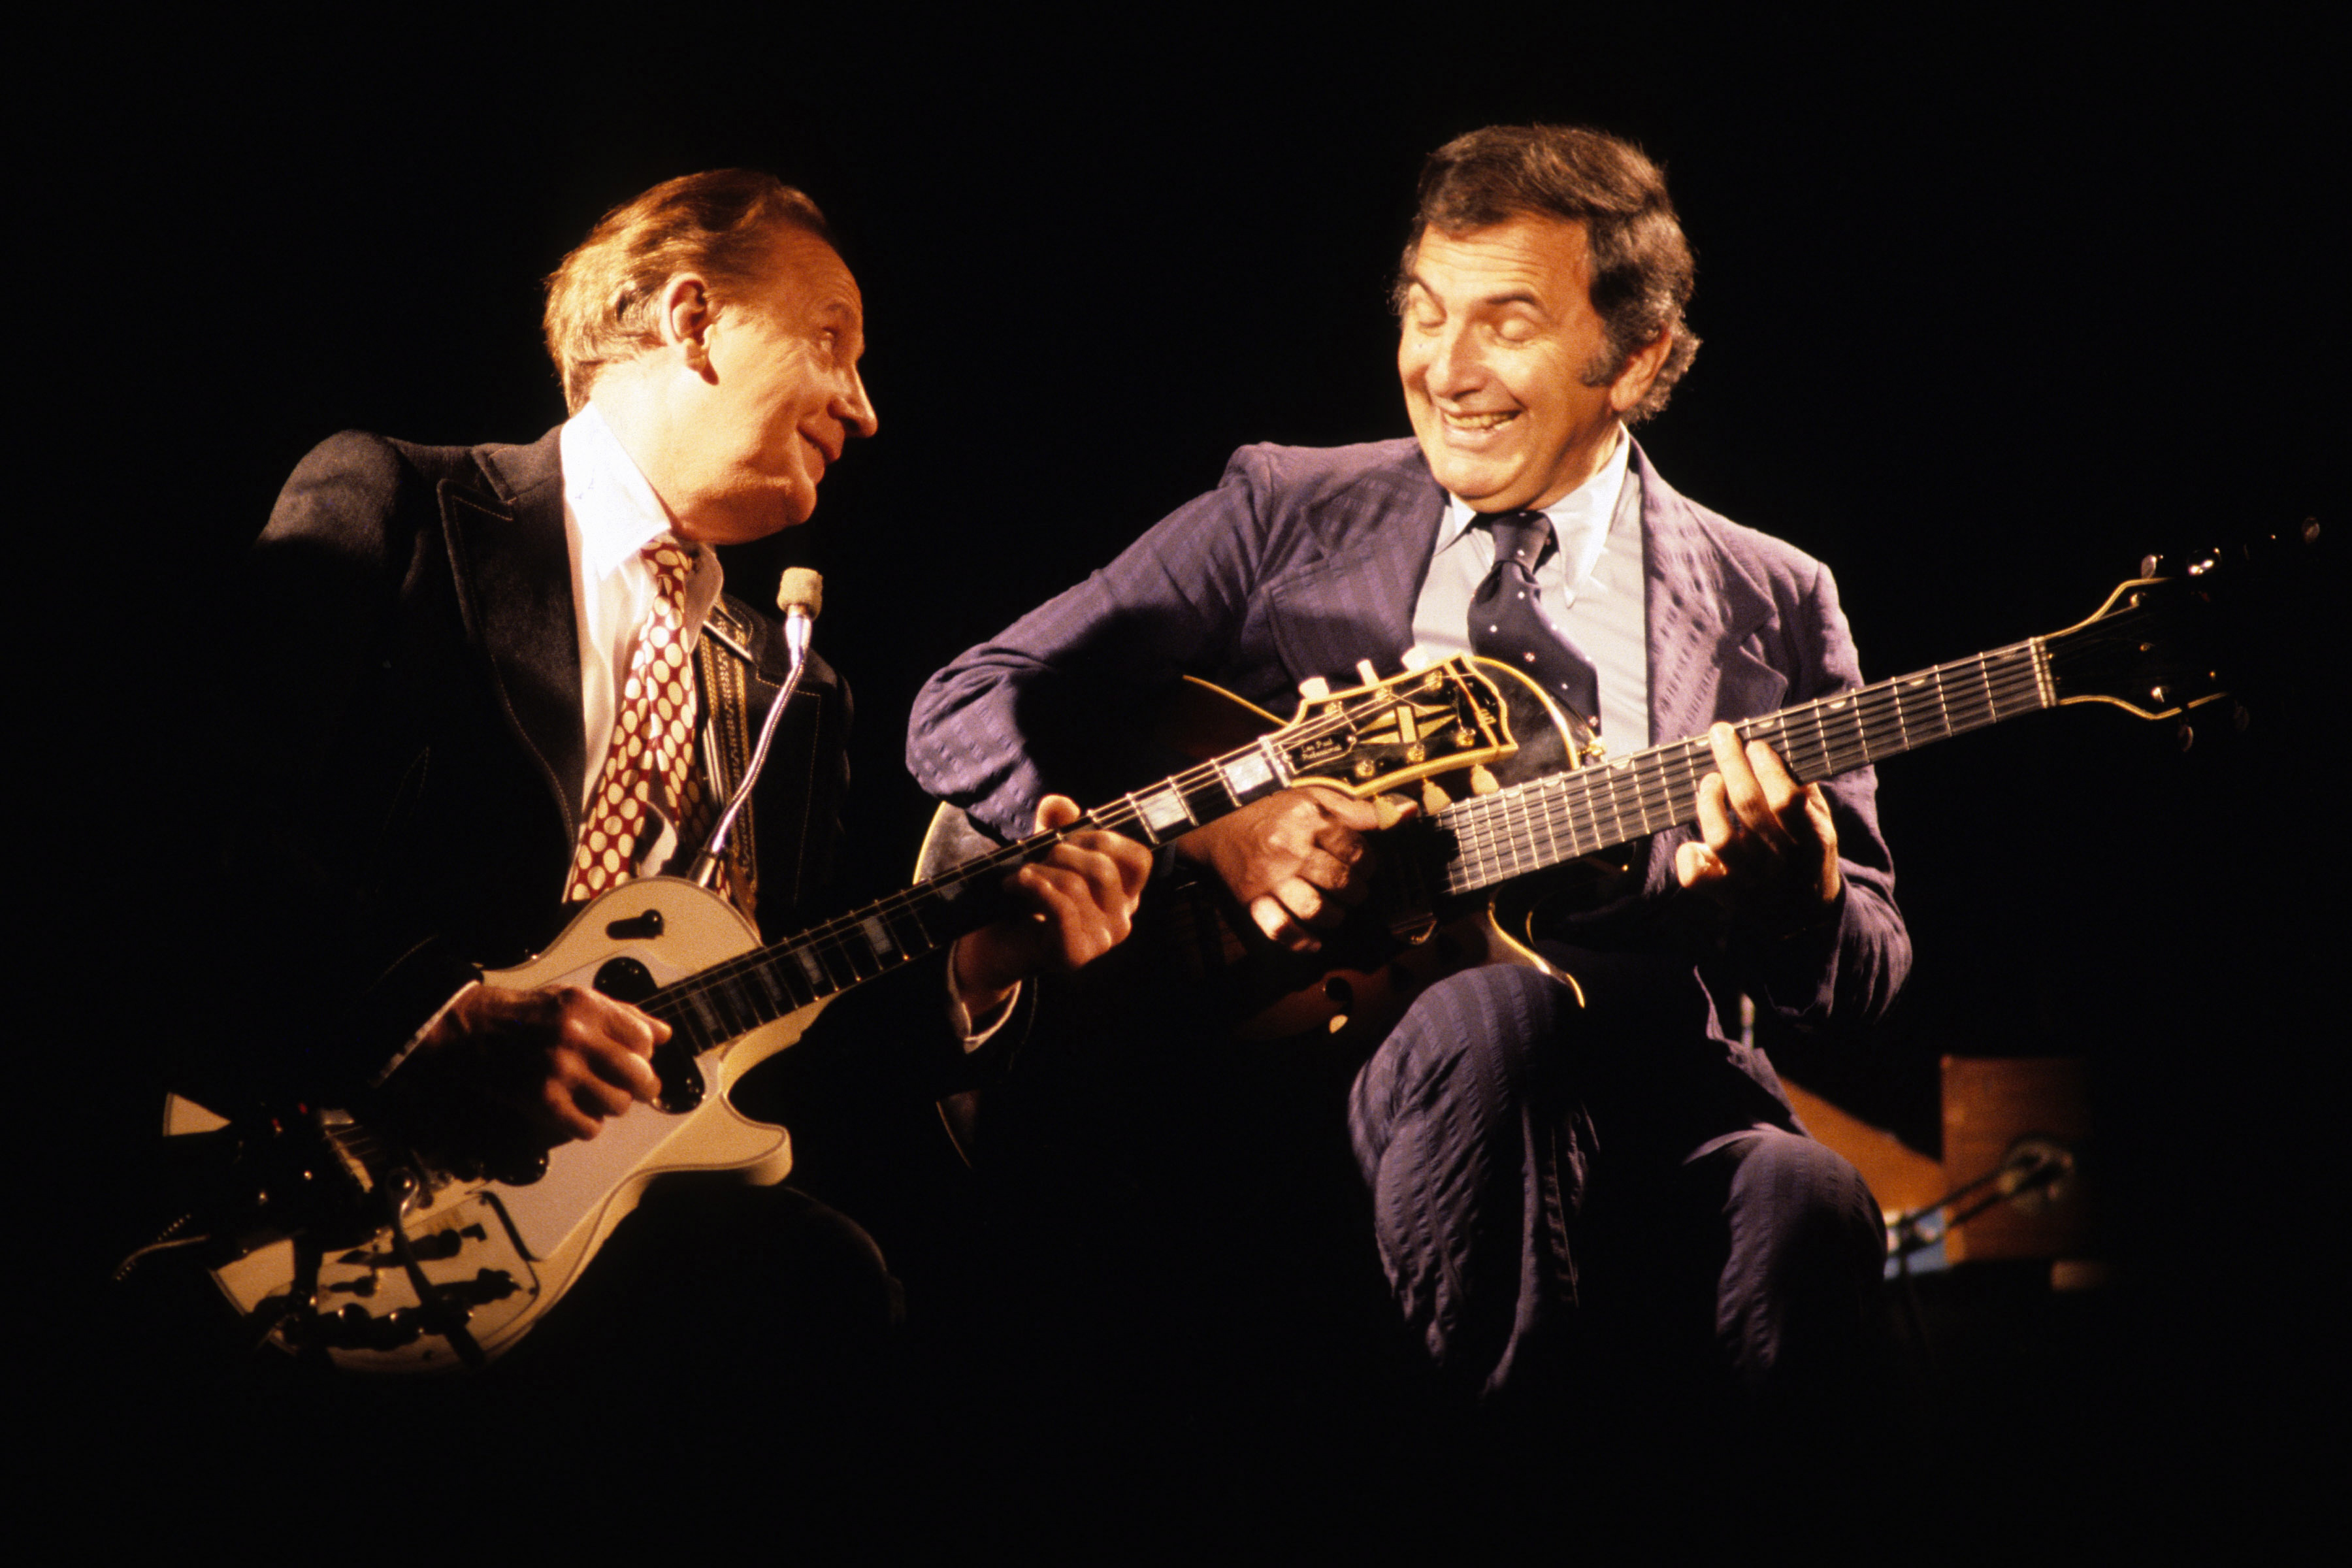 Paul shared a 1976 Grammy with Chet Atkins, shown above at right, for their album  Chester and Lester.